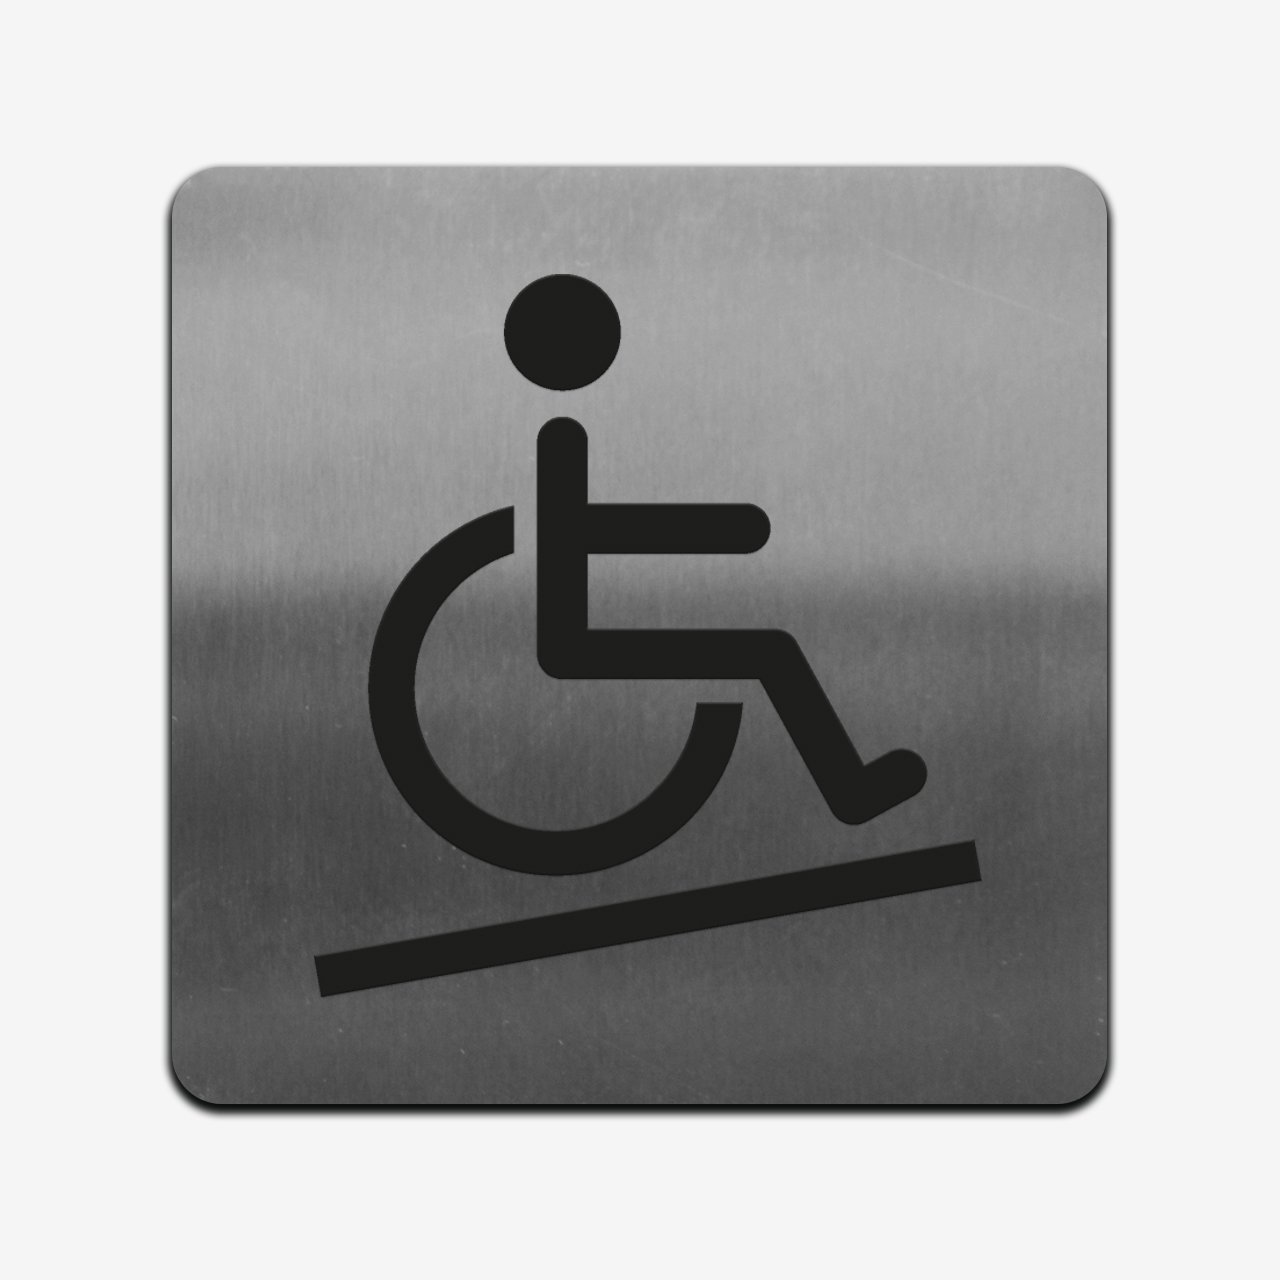 Disabled Access - Stainless Steel Sign Information signs square Bsign